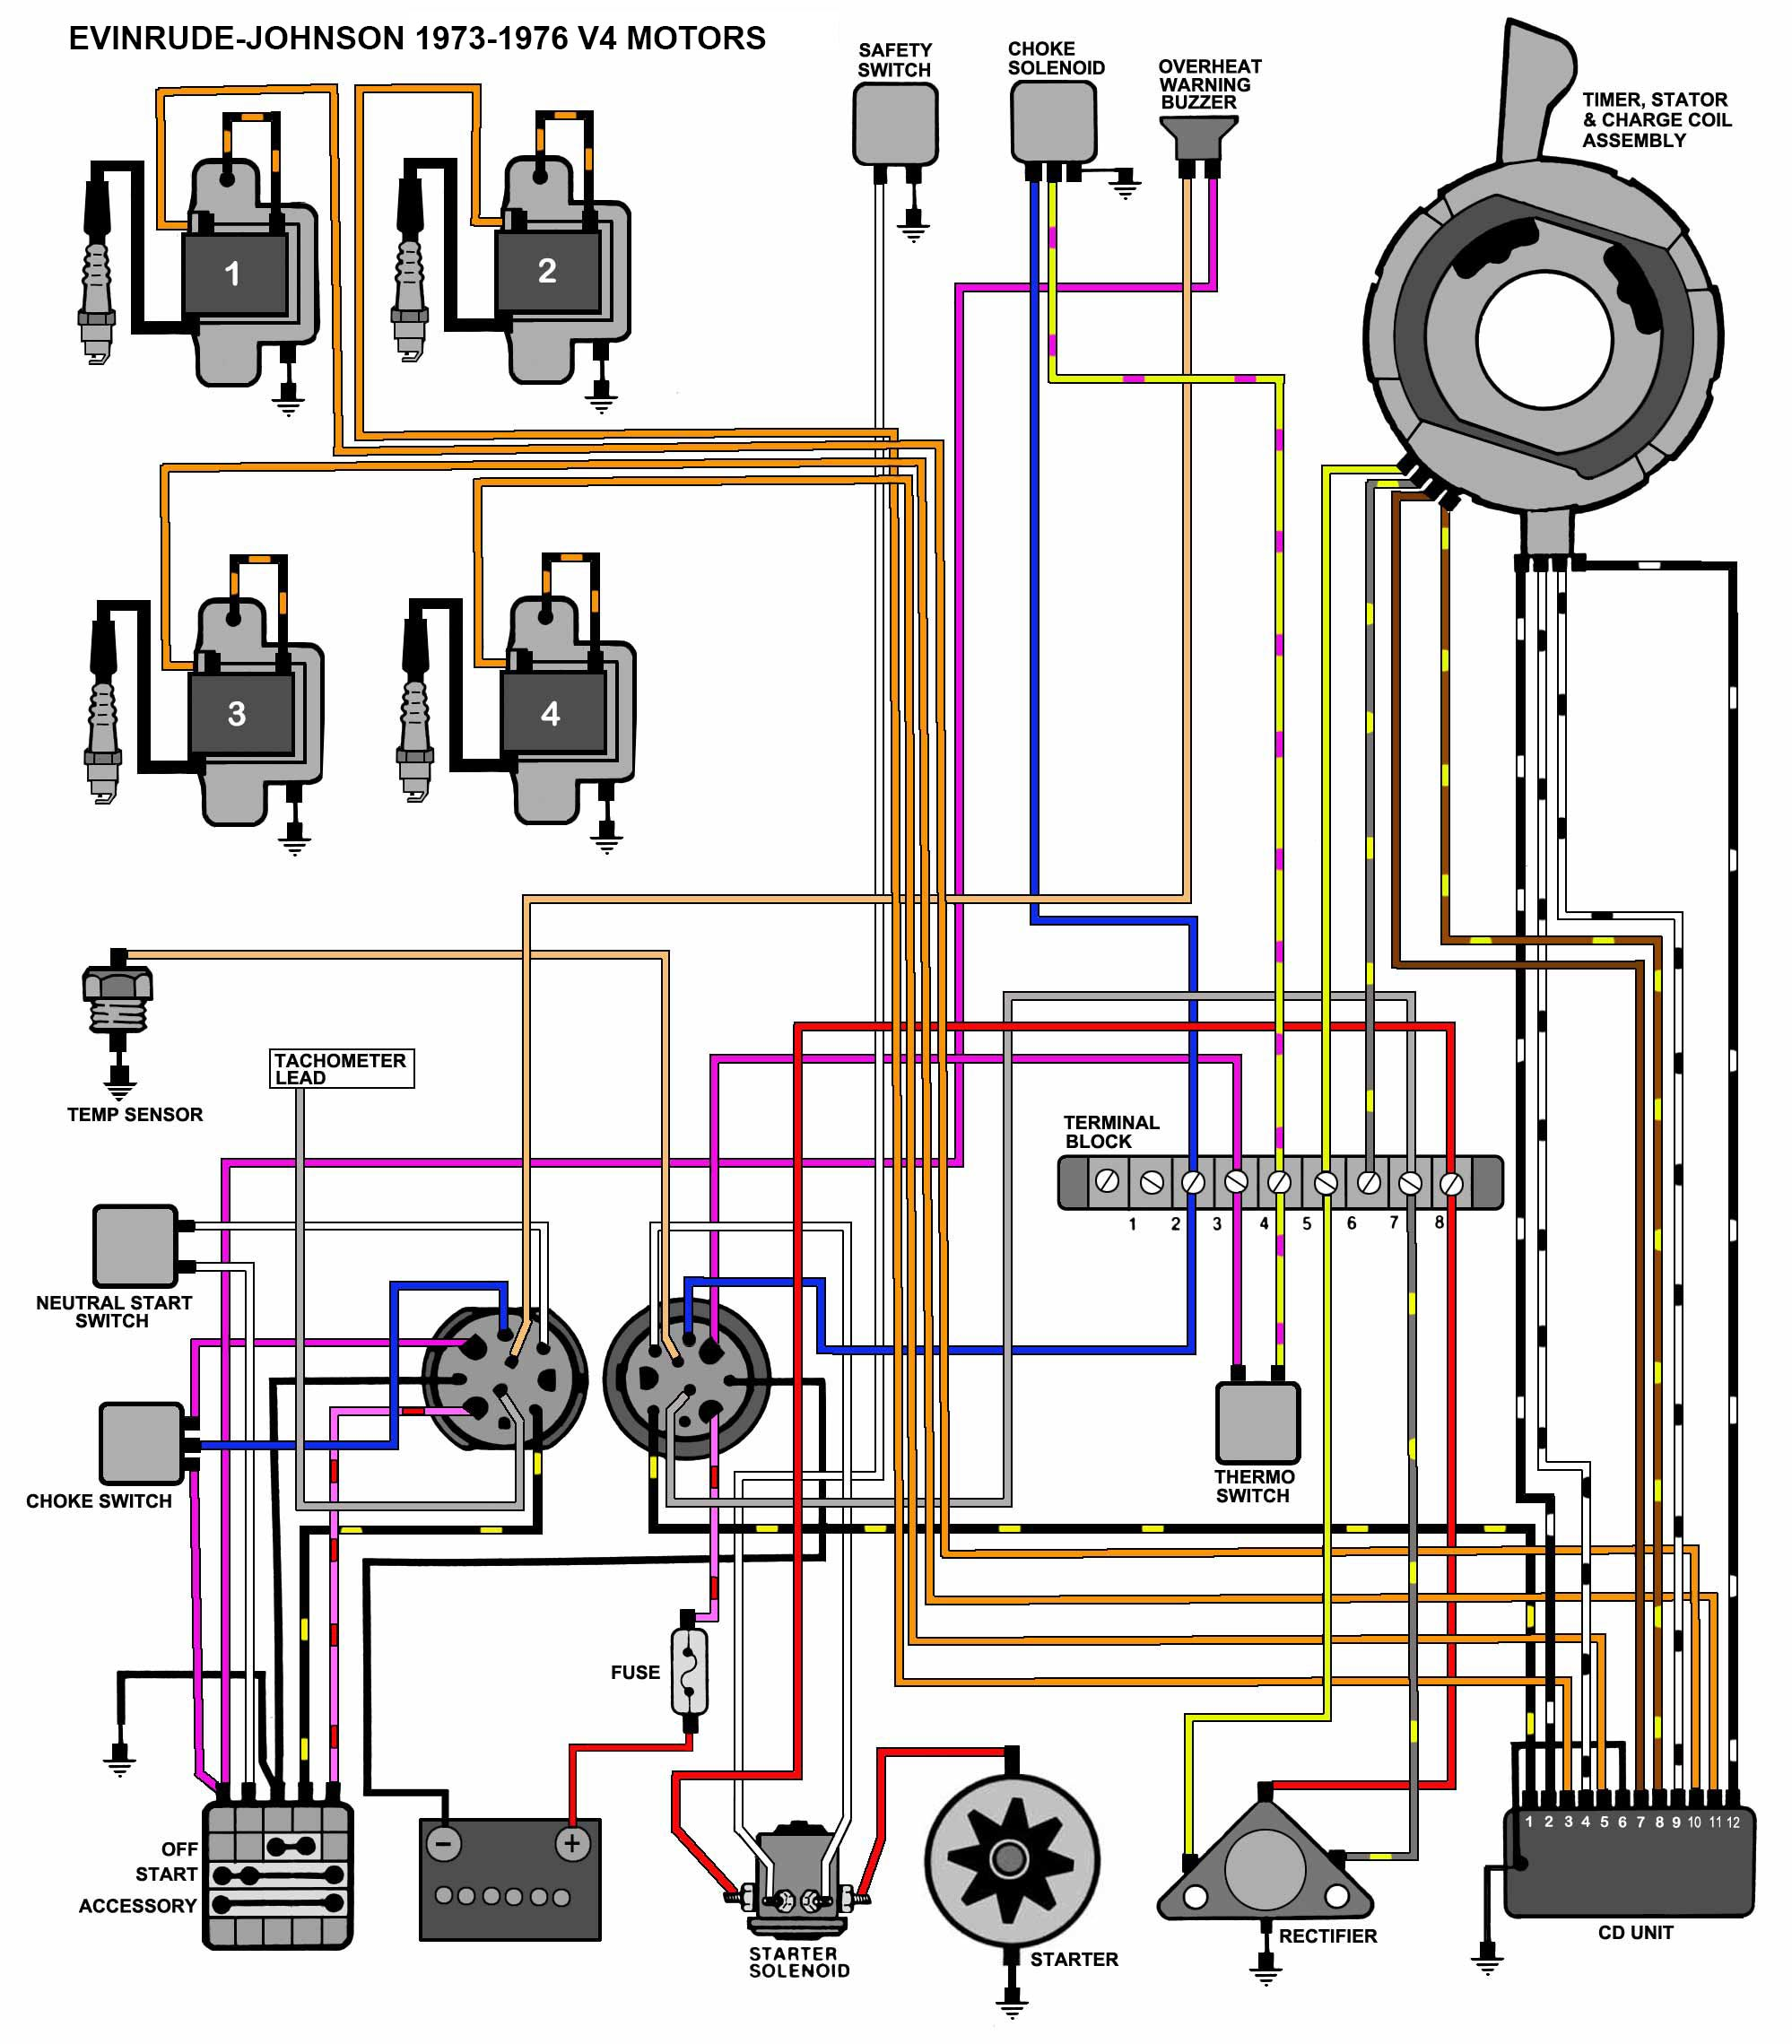 Gm Alternator Wire Schematic Wiring 2019 Evinrude Johnson Outboard Diagrams Mastertech One Diagram 4